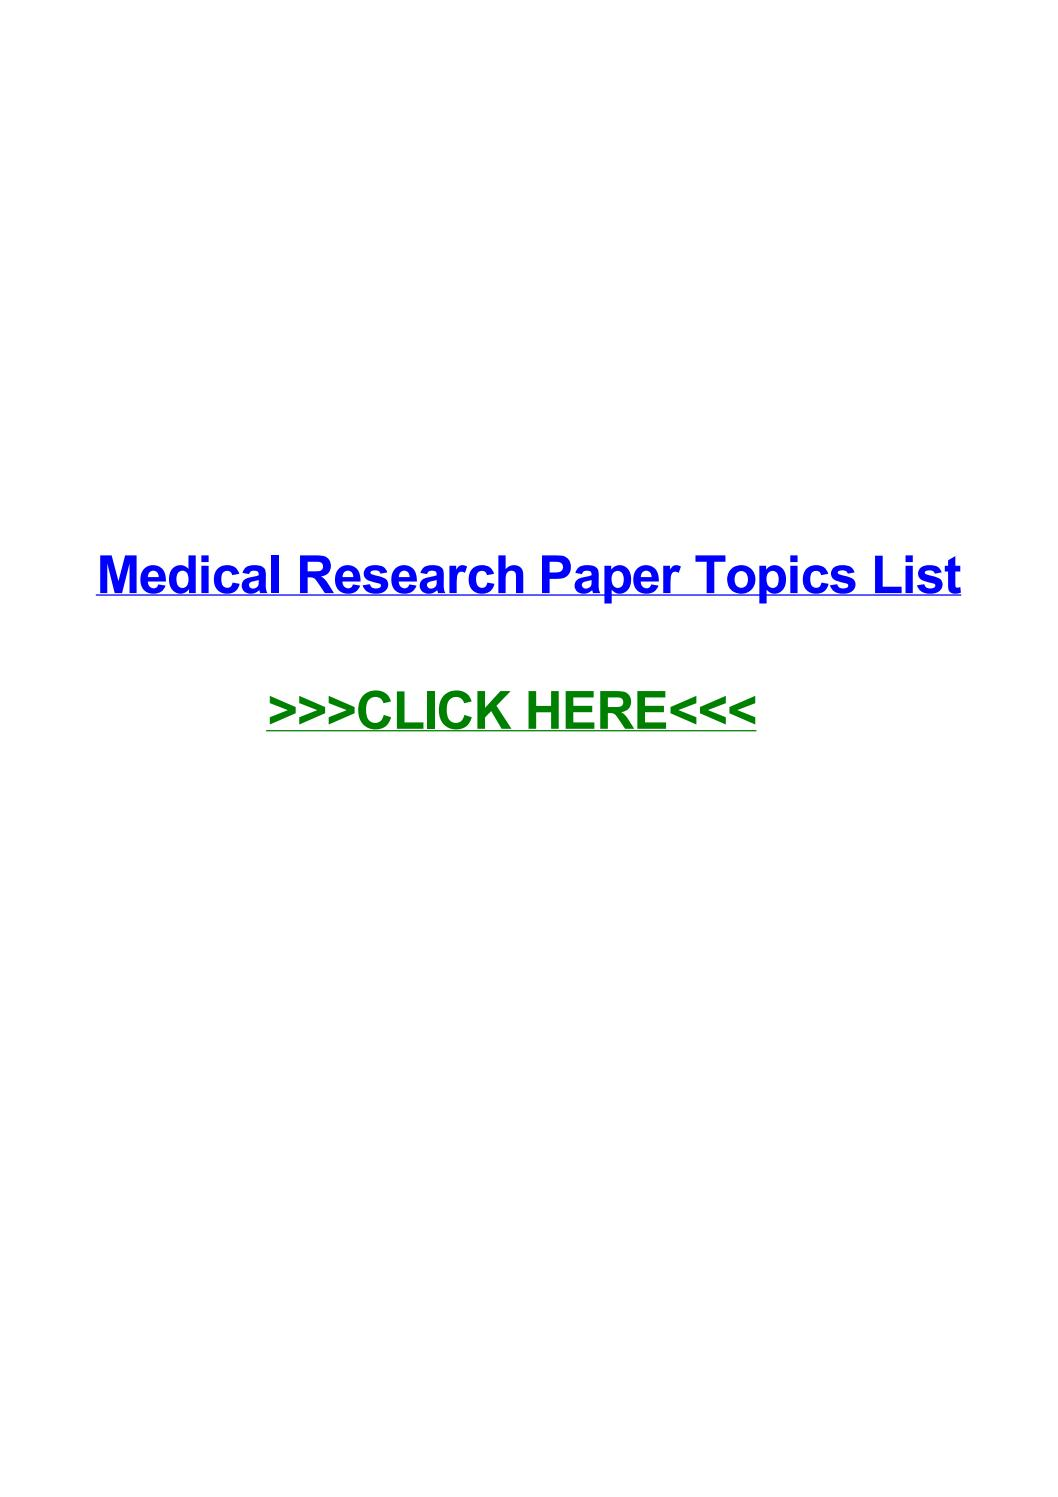 009 Medical Topics For Research Paper Page 1 Imposing Hot Papers Argumentative Best Full